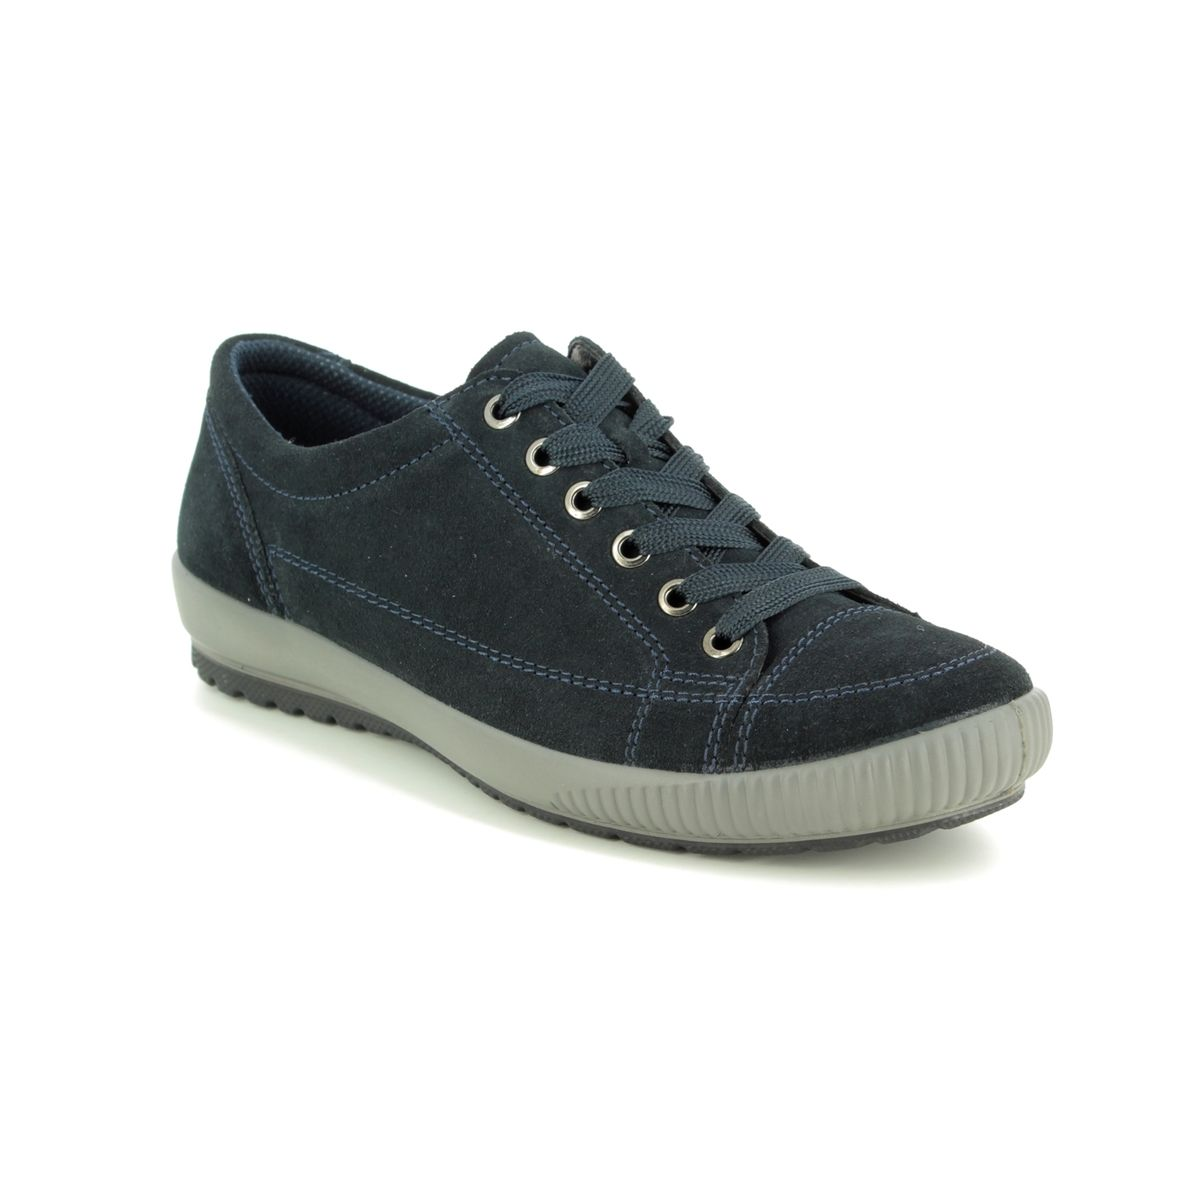 where can i buy online shop new product 00820/80 Tanaro Stitch at Begg Shoes & Bags